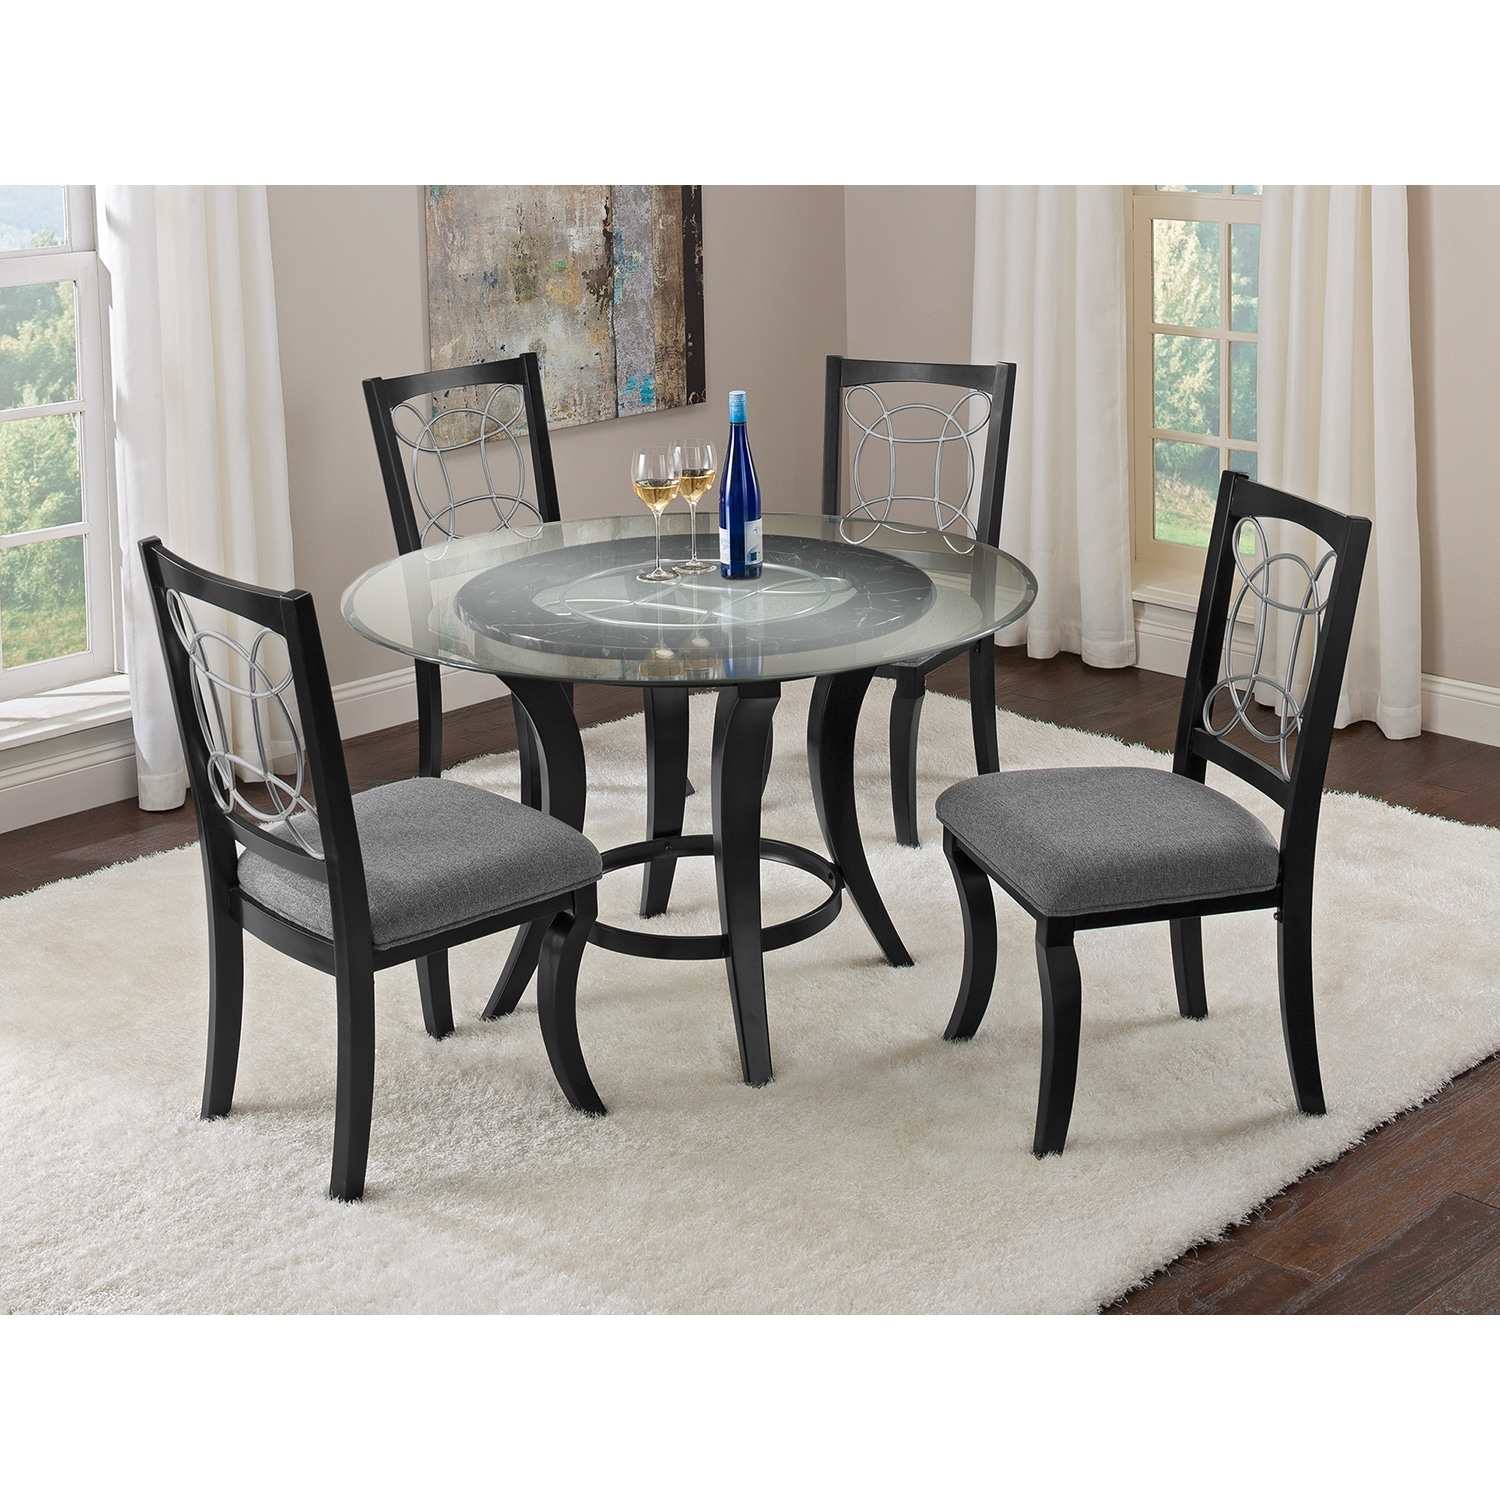 Pandora Dining Room 5 Pc Dinette Value City Furniture